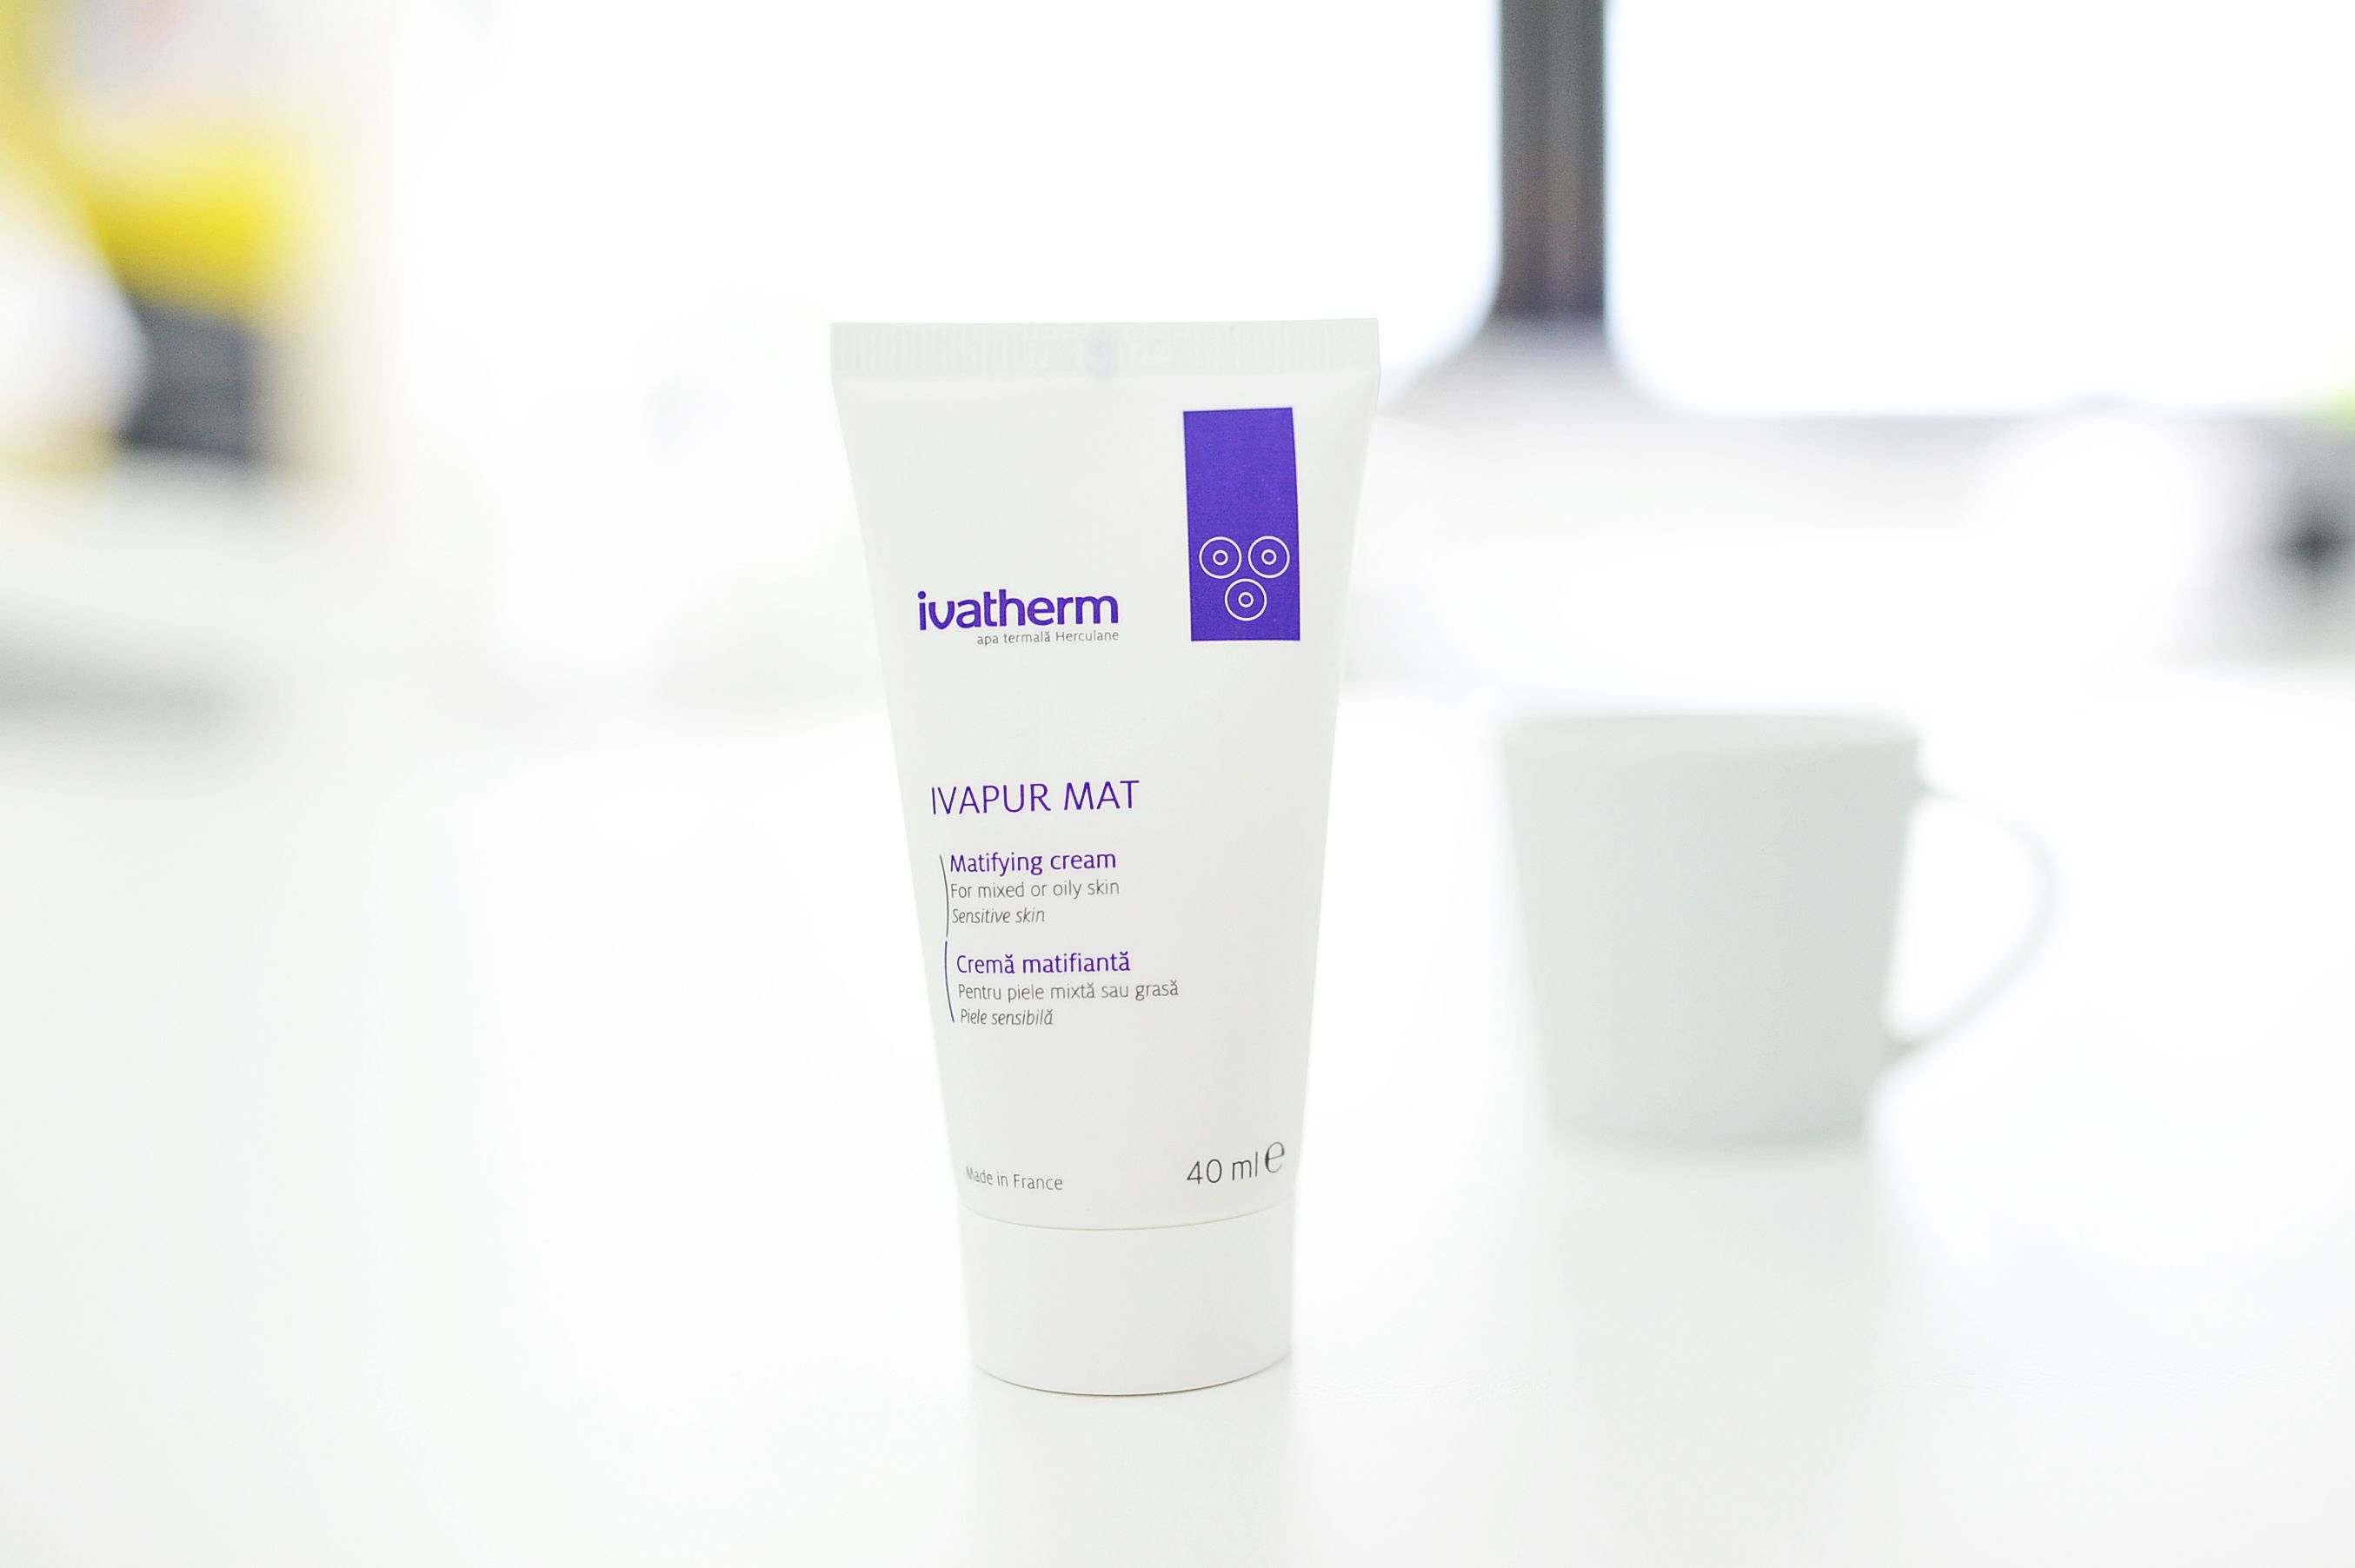 #IVAPUR MAT  #IVATHERM Apply on clean #skin in the morning and evening, ideally cleaned with IVAPUR purifying foaming gel for mixed and oily #skin.